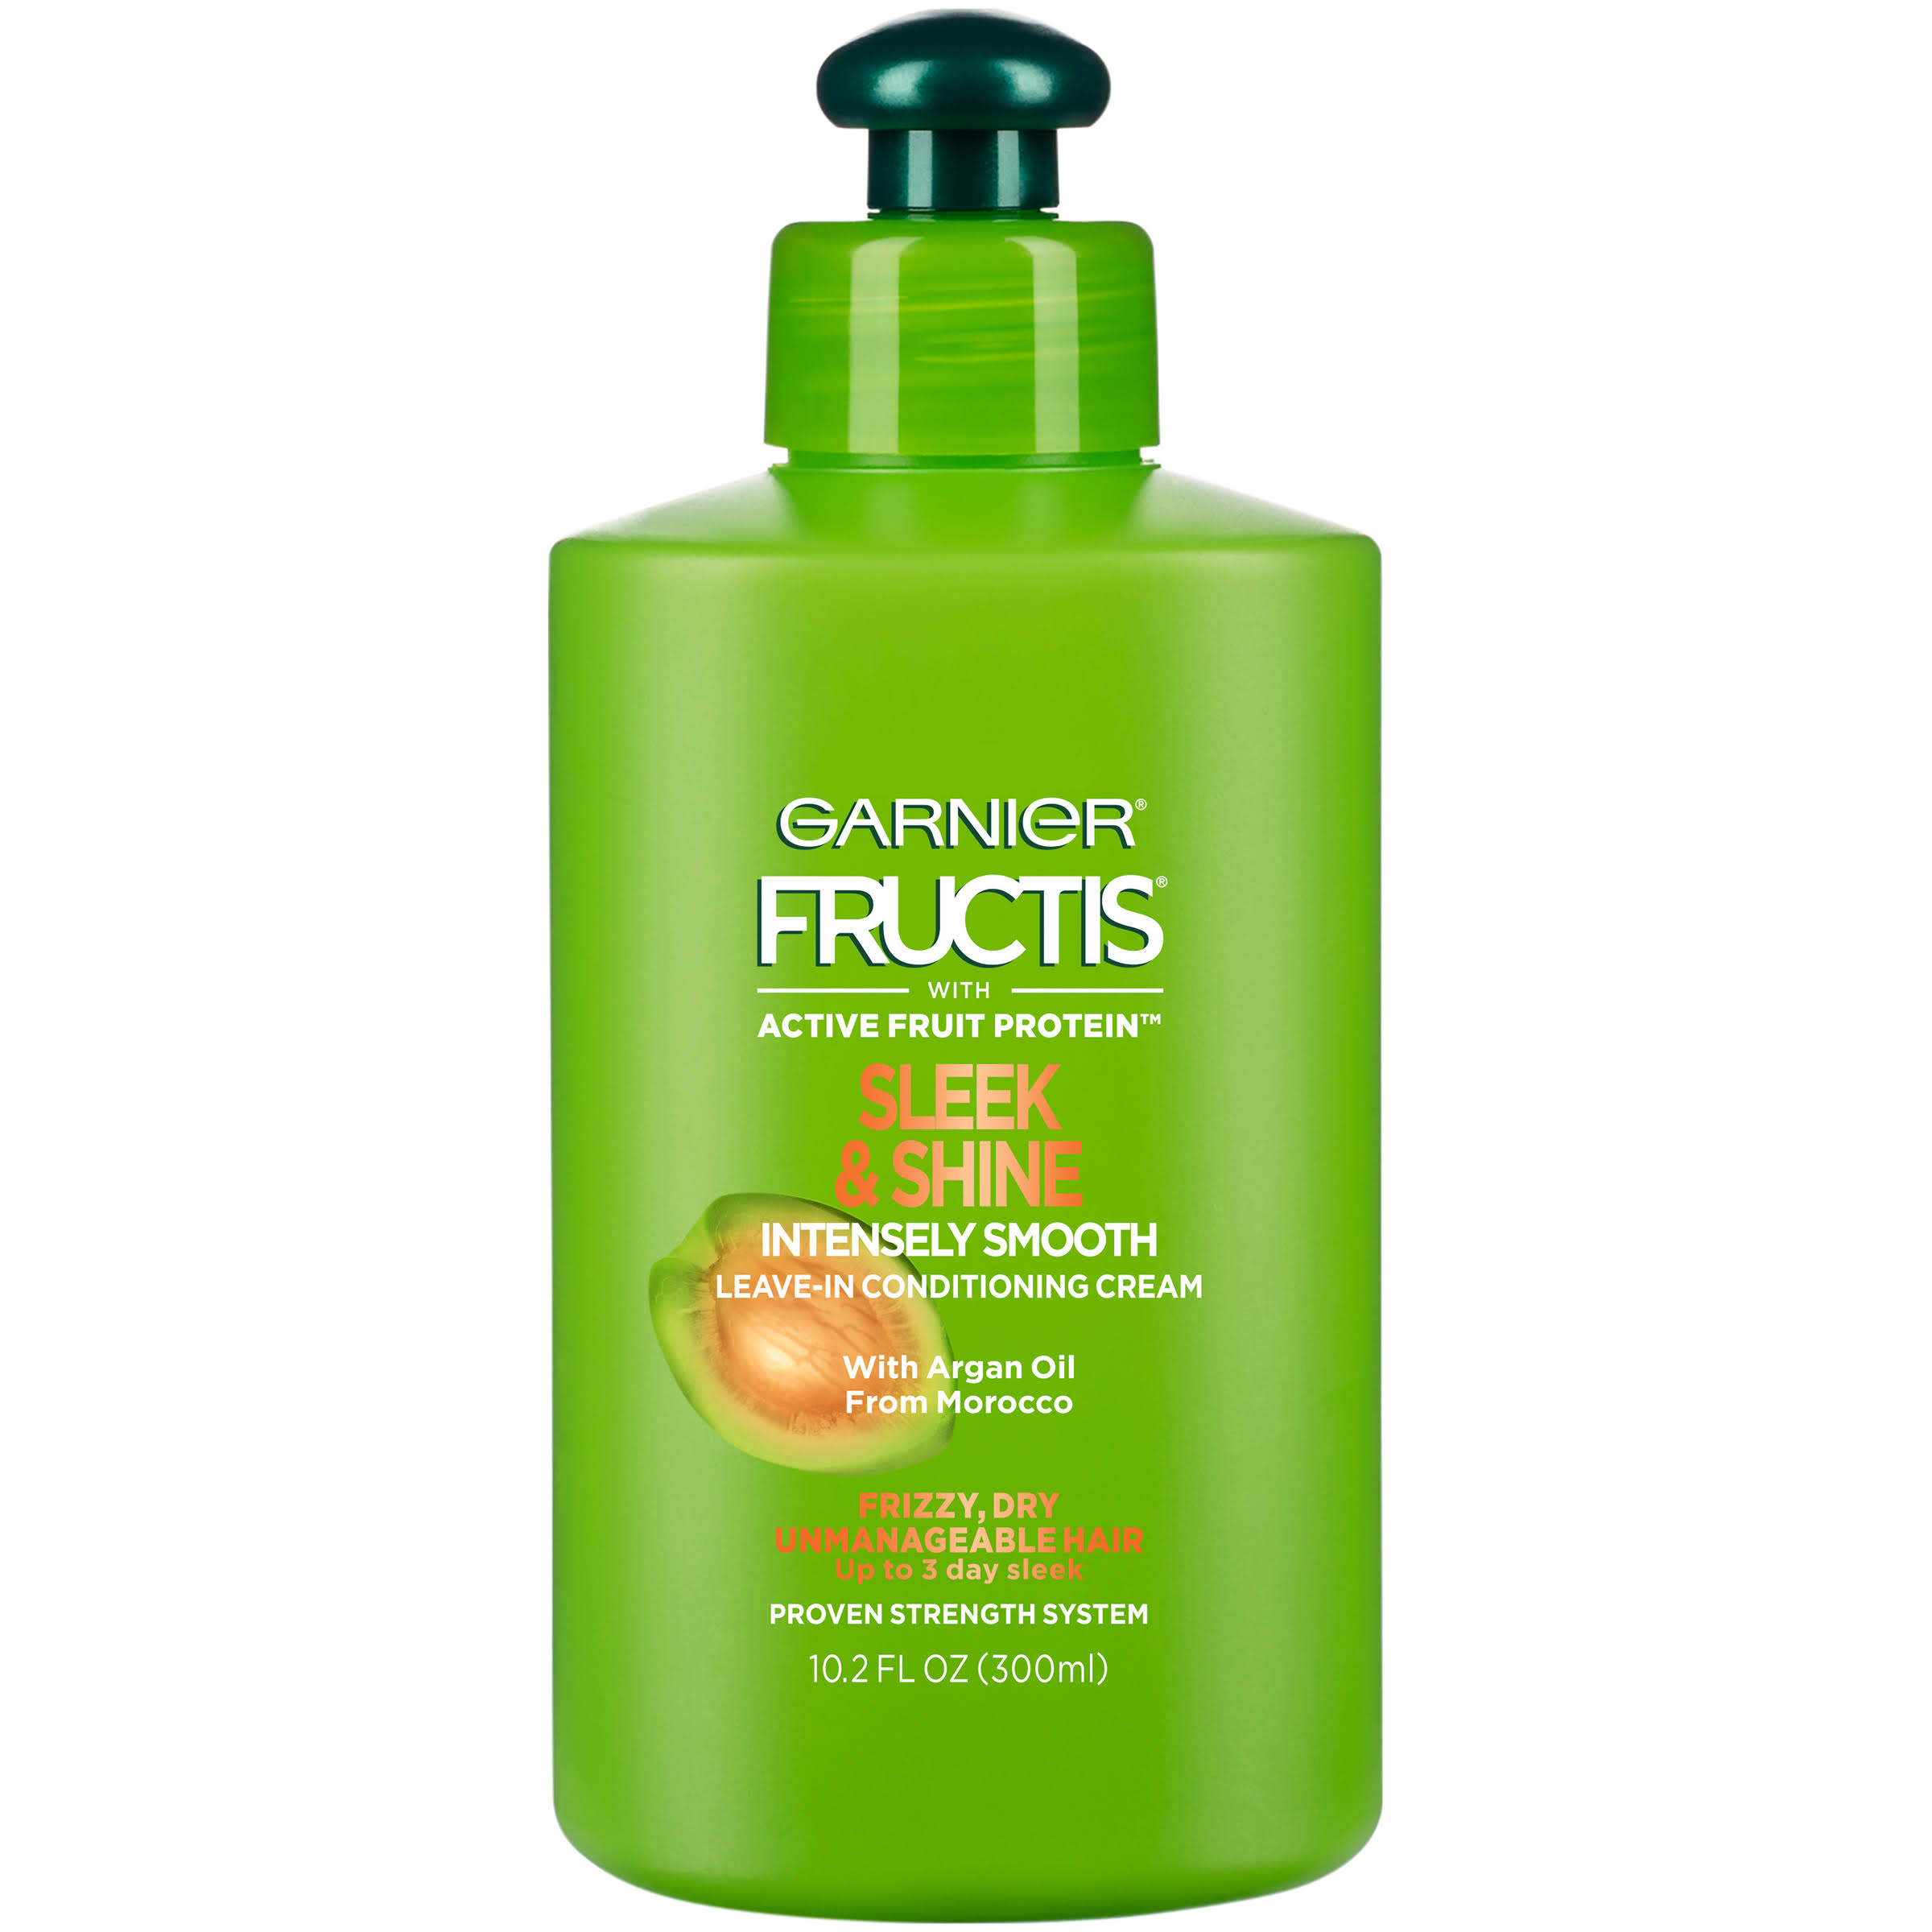 Garnier Fructis Sleek & Shine Intensely Smooth Leave-In Conditioning Cream - 10.2oz